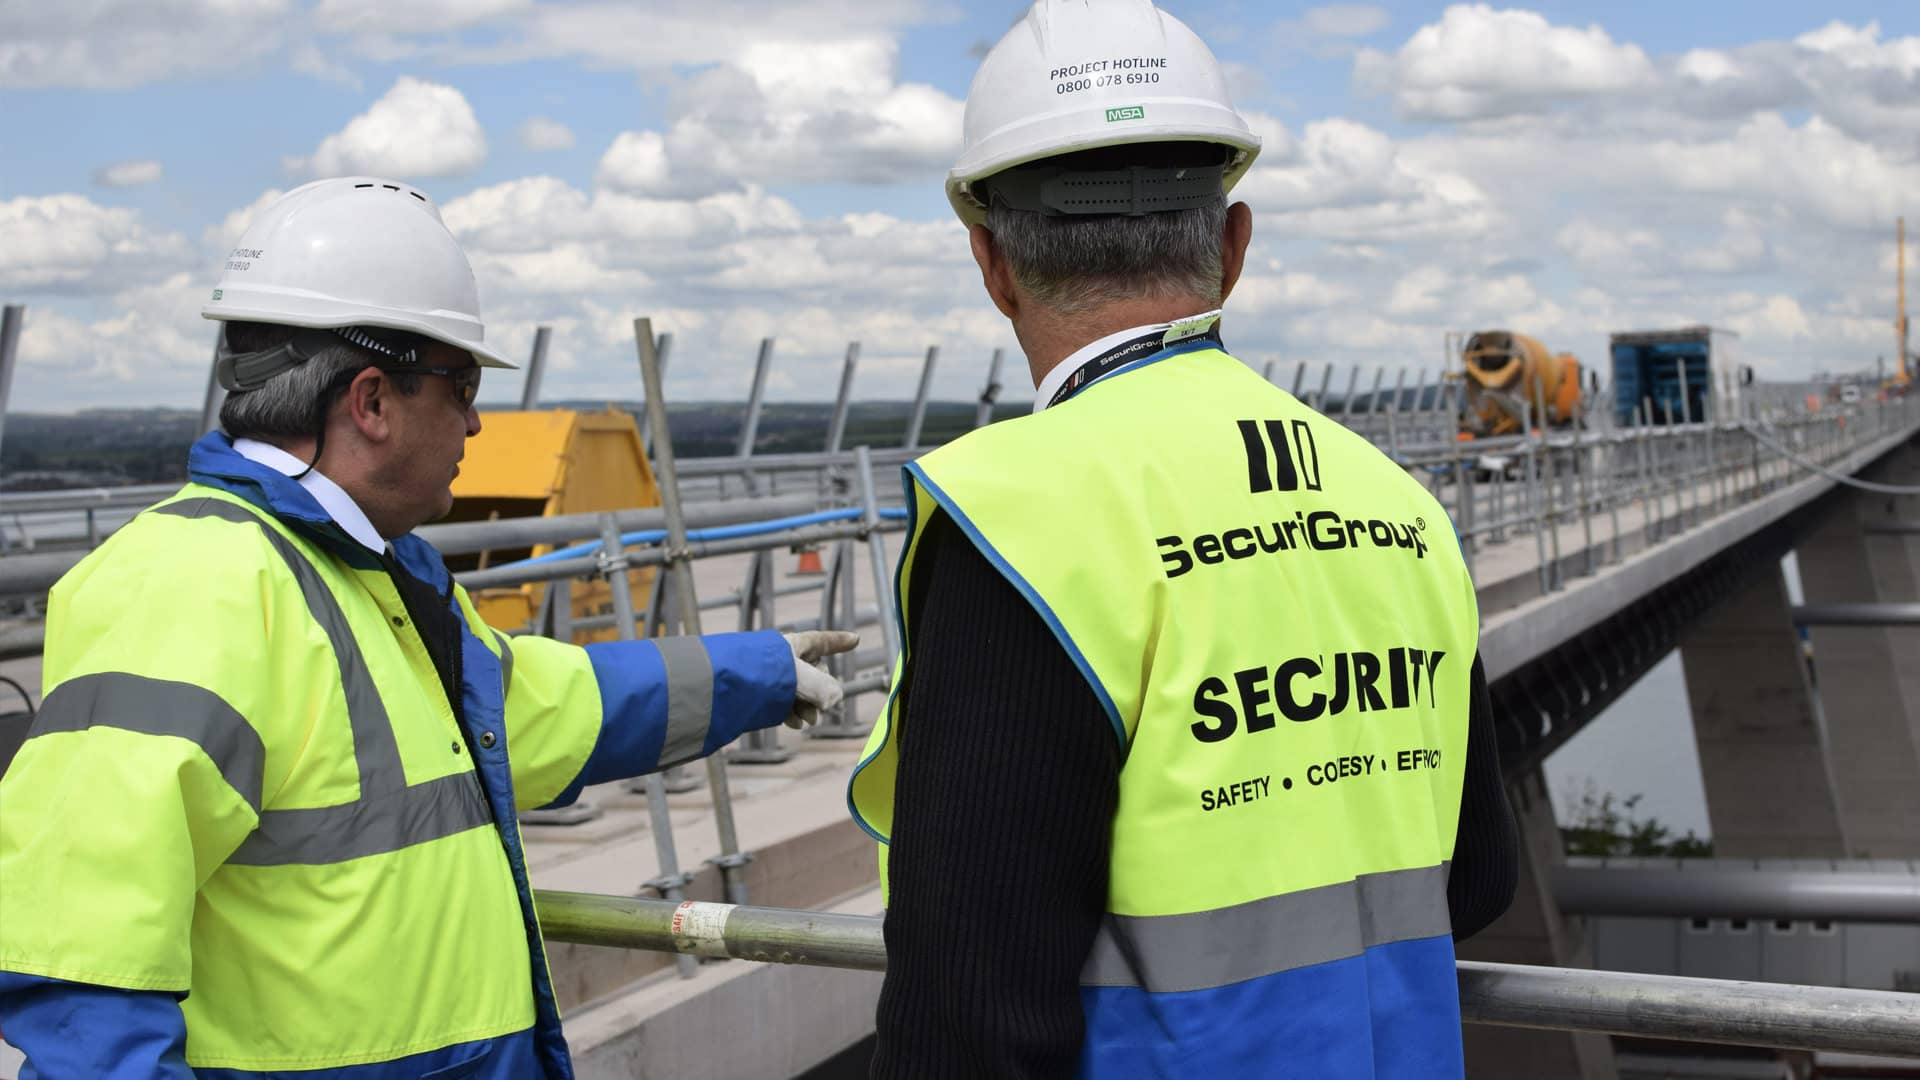 SecuriGroup - One of the UK's Largest Security Providers